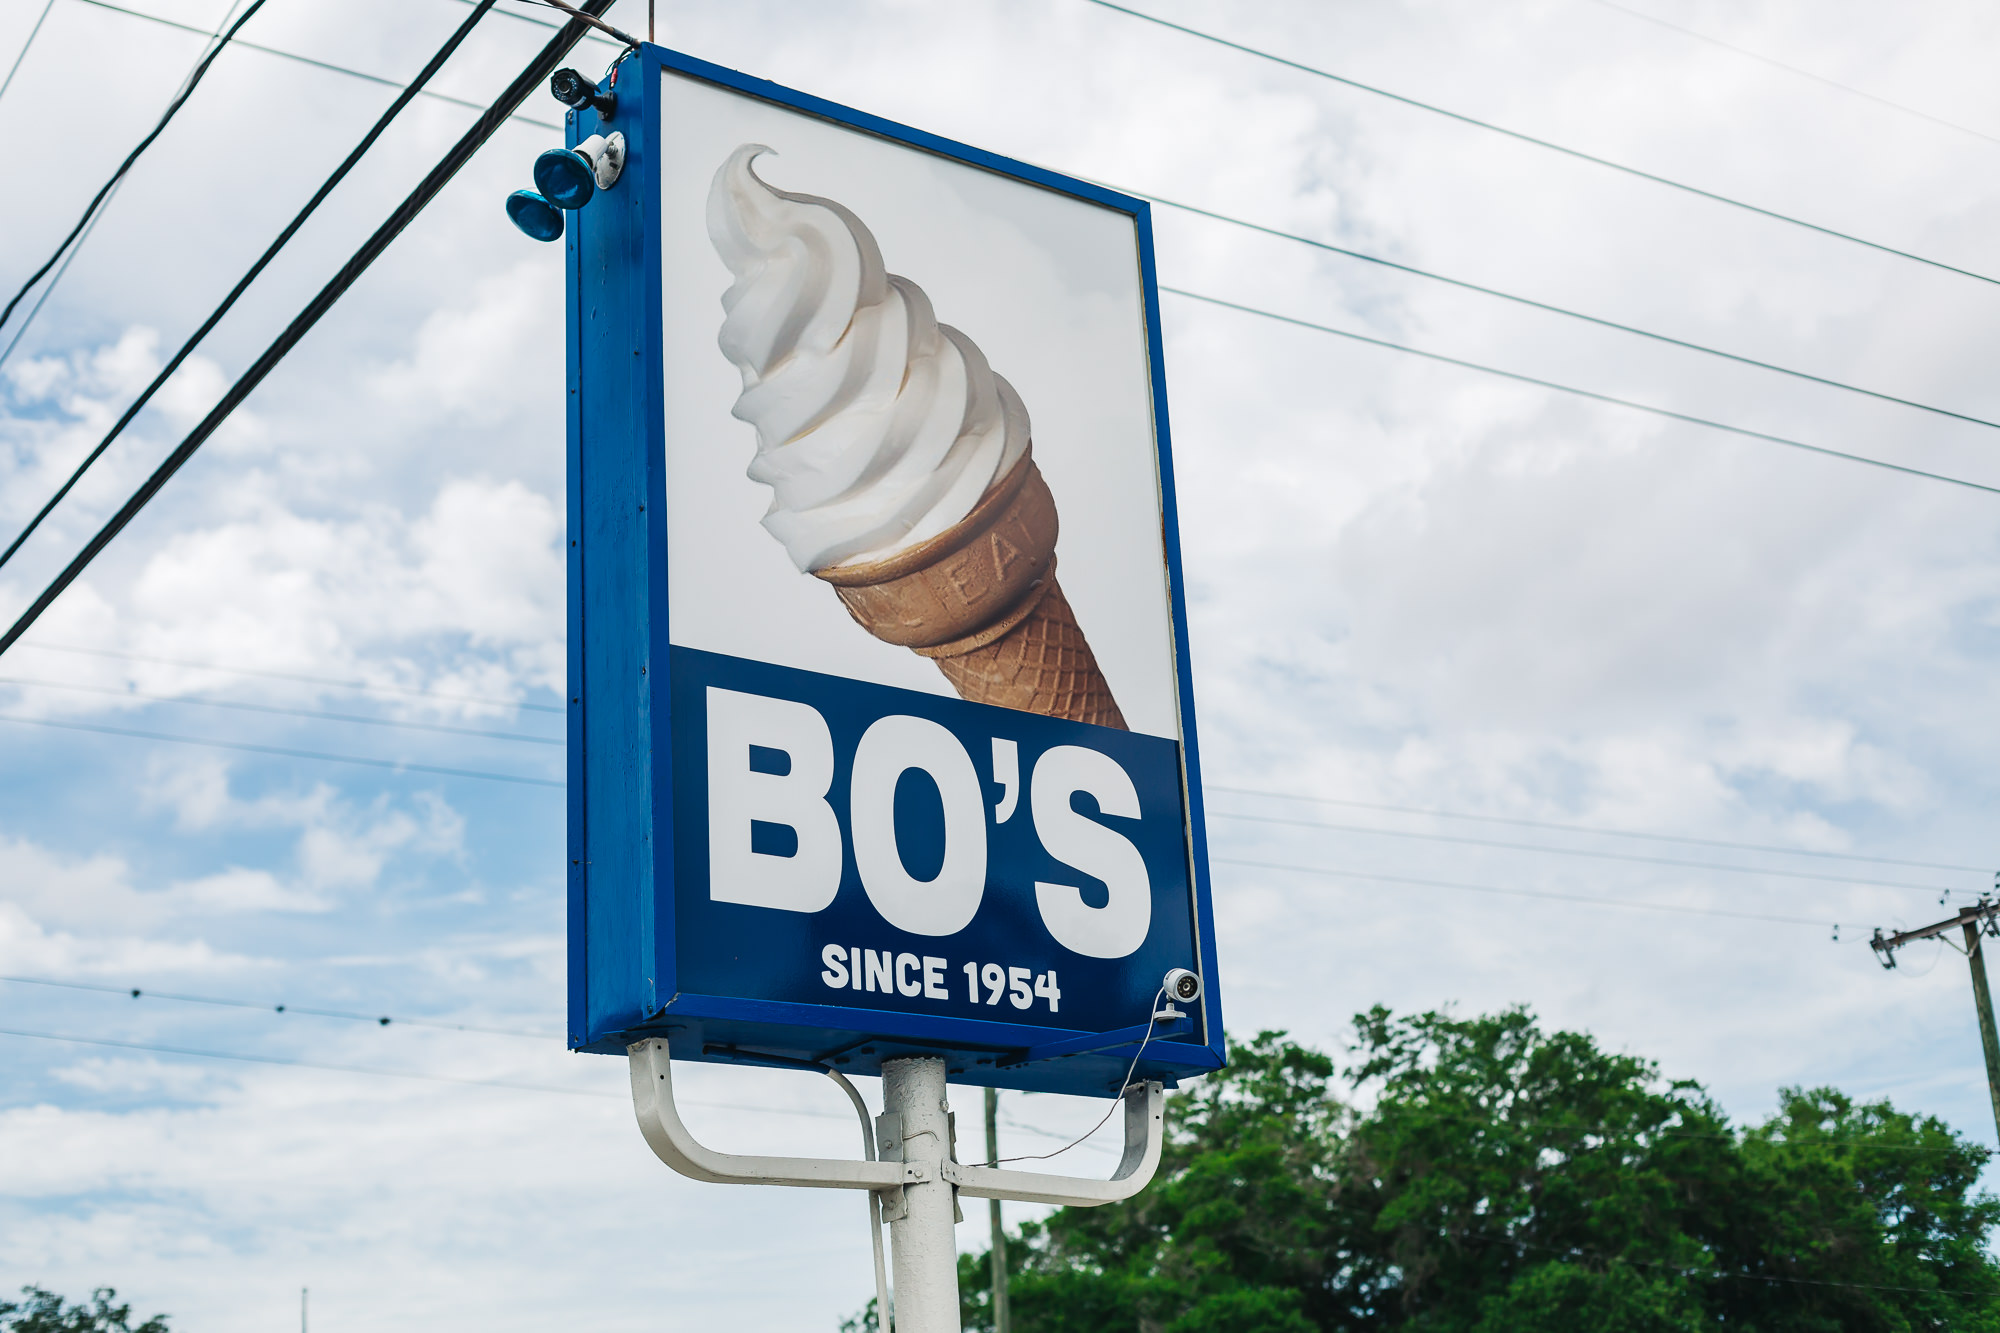 Bo's Ice Cream has been a Tampa favorite since 1954